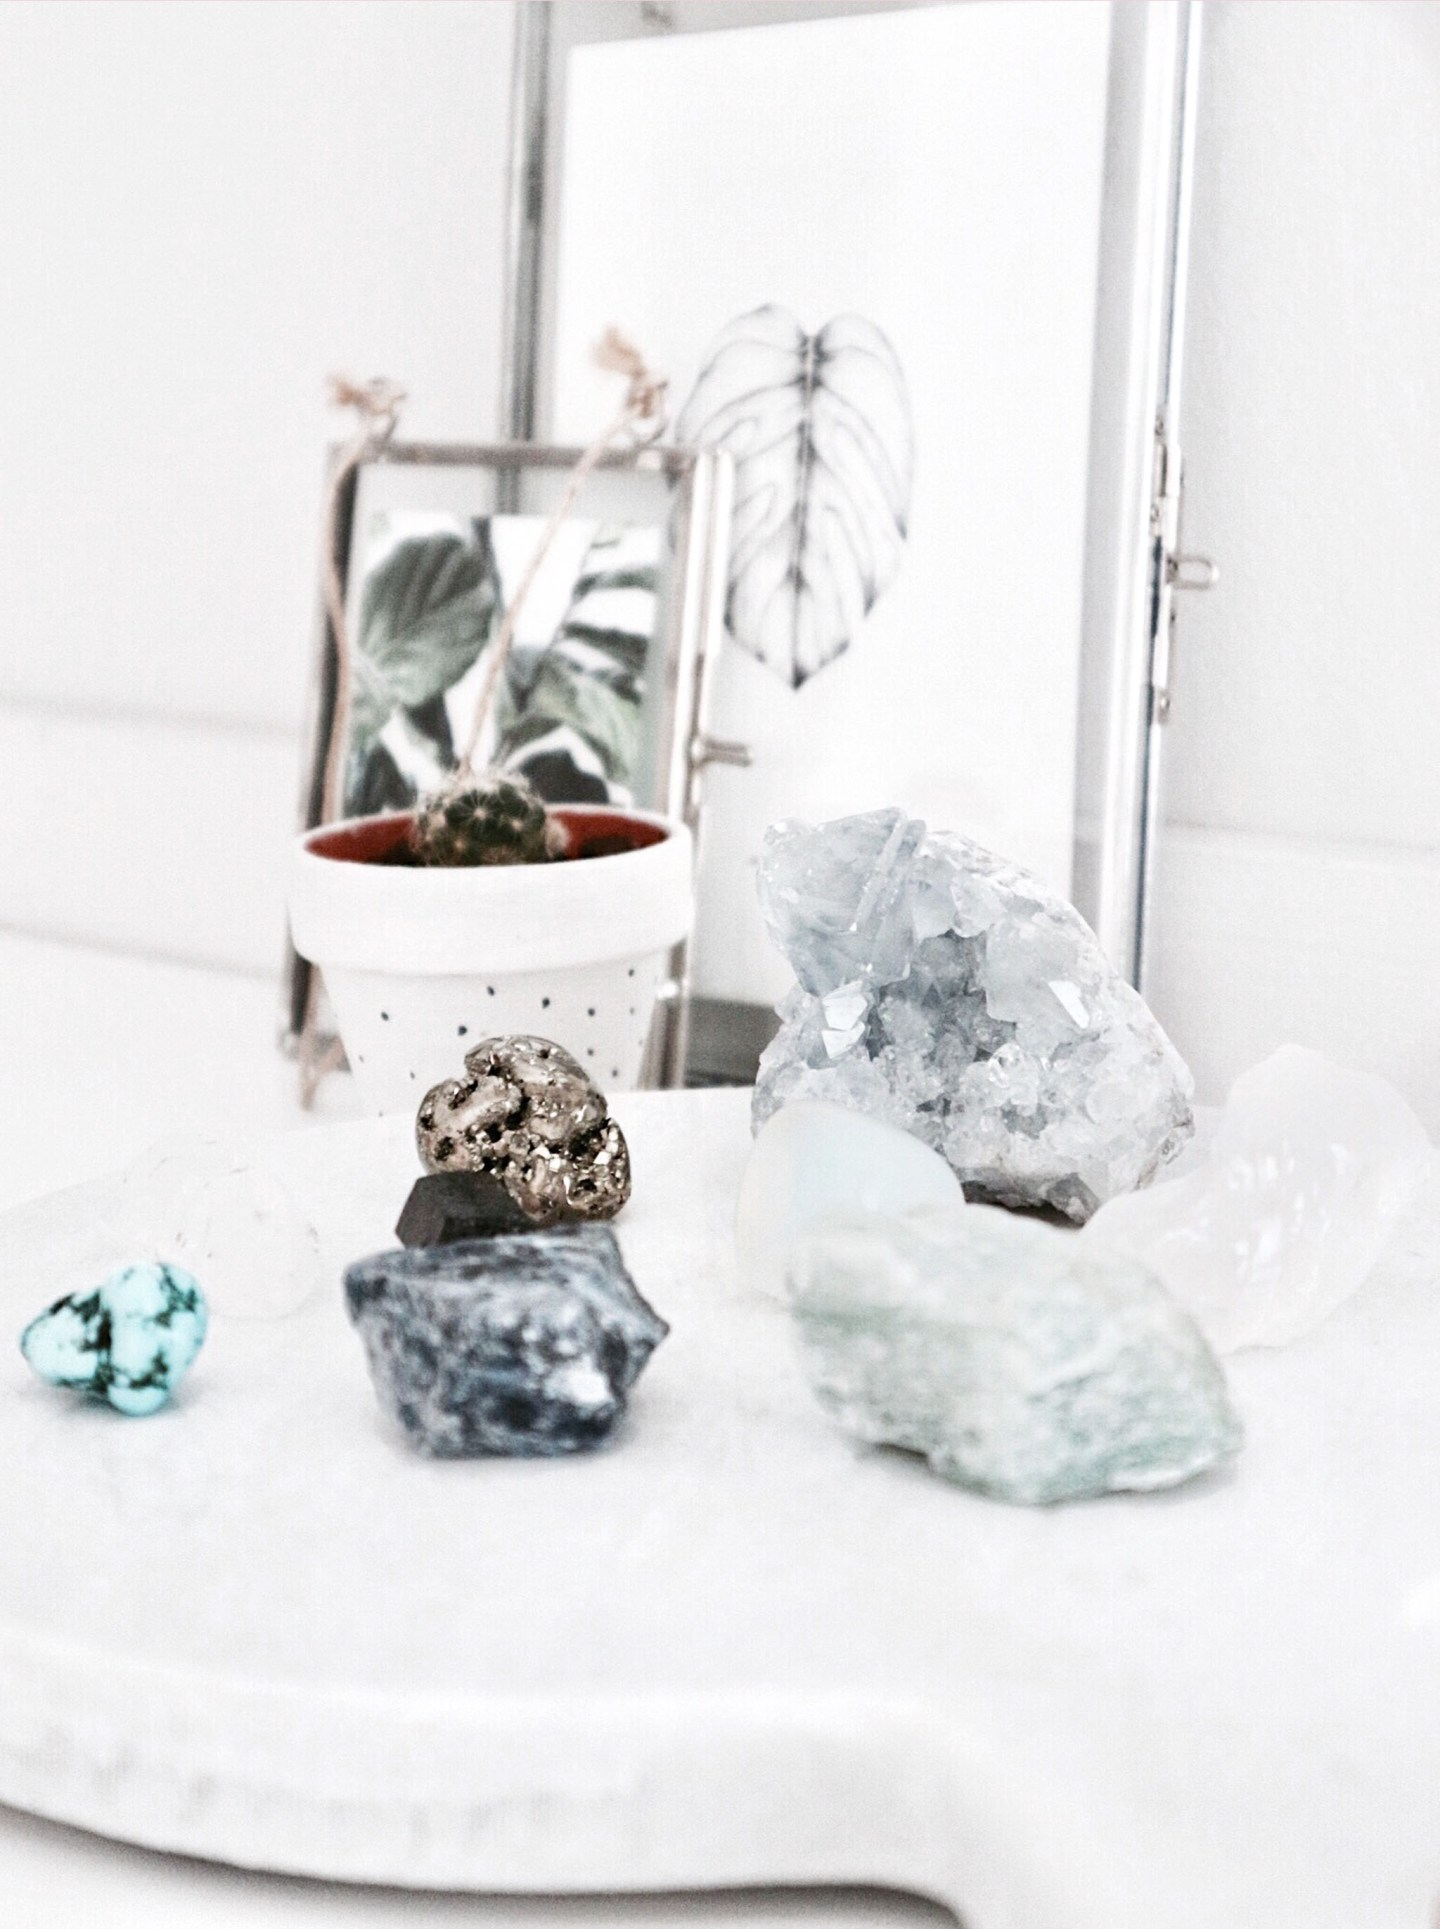 Here's What You Need To Know About Crystals & How They Can Help You | Inspiration: Crystals